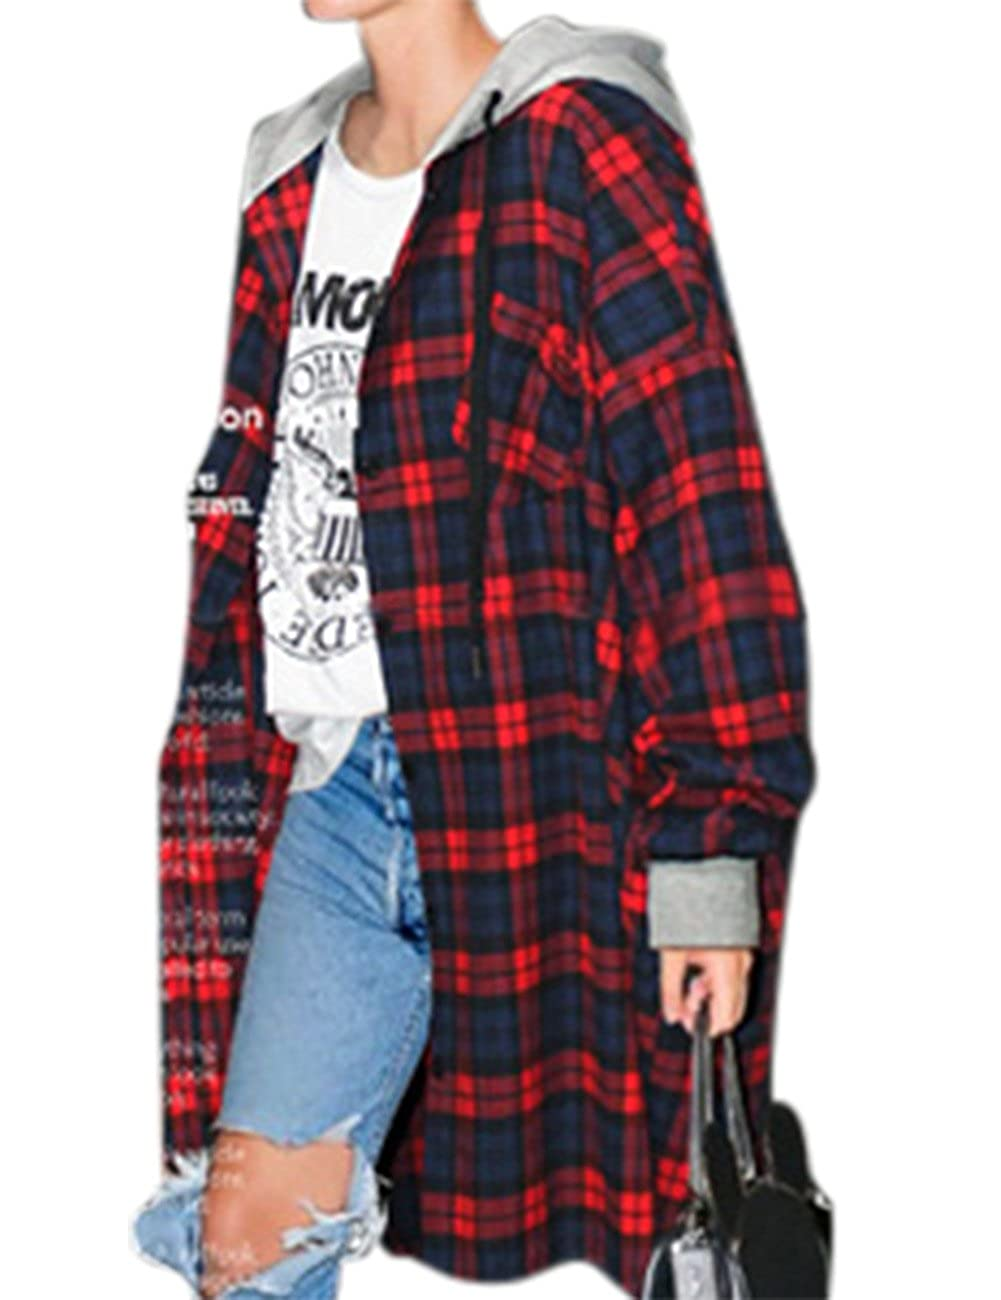 YesFashion Women's Vintage Plus Size Plaid Hooded New Look Loose Coat IM-YLDI-JVT3